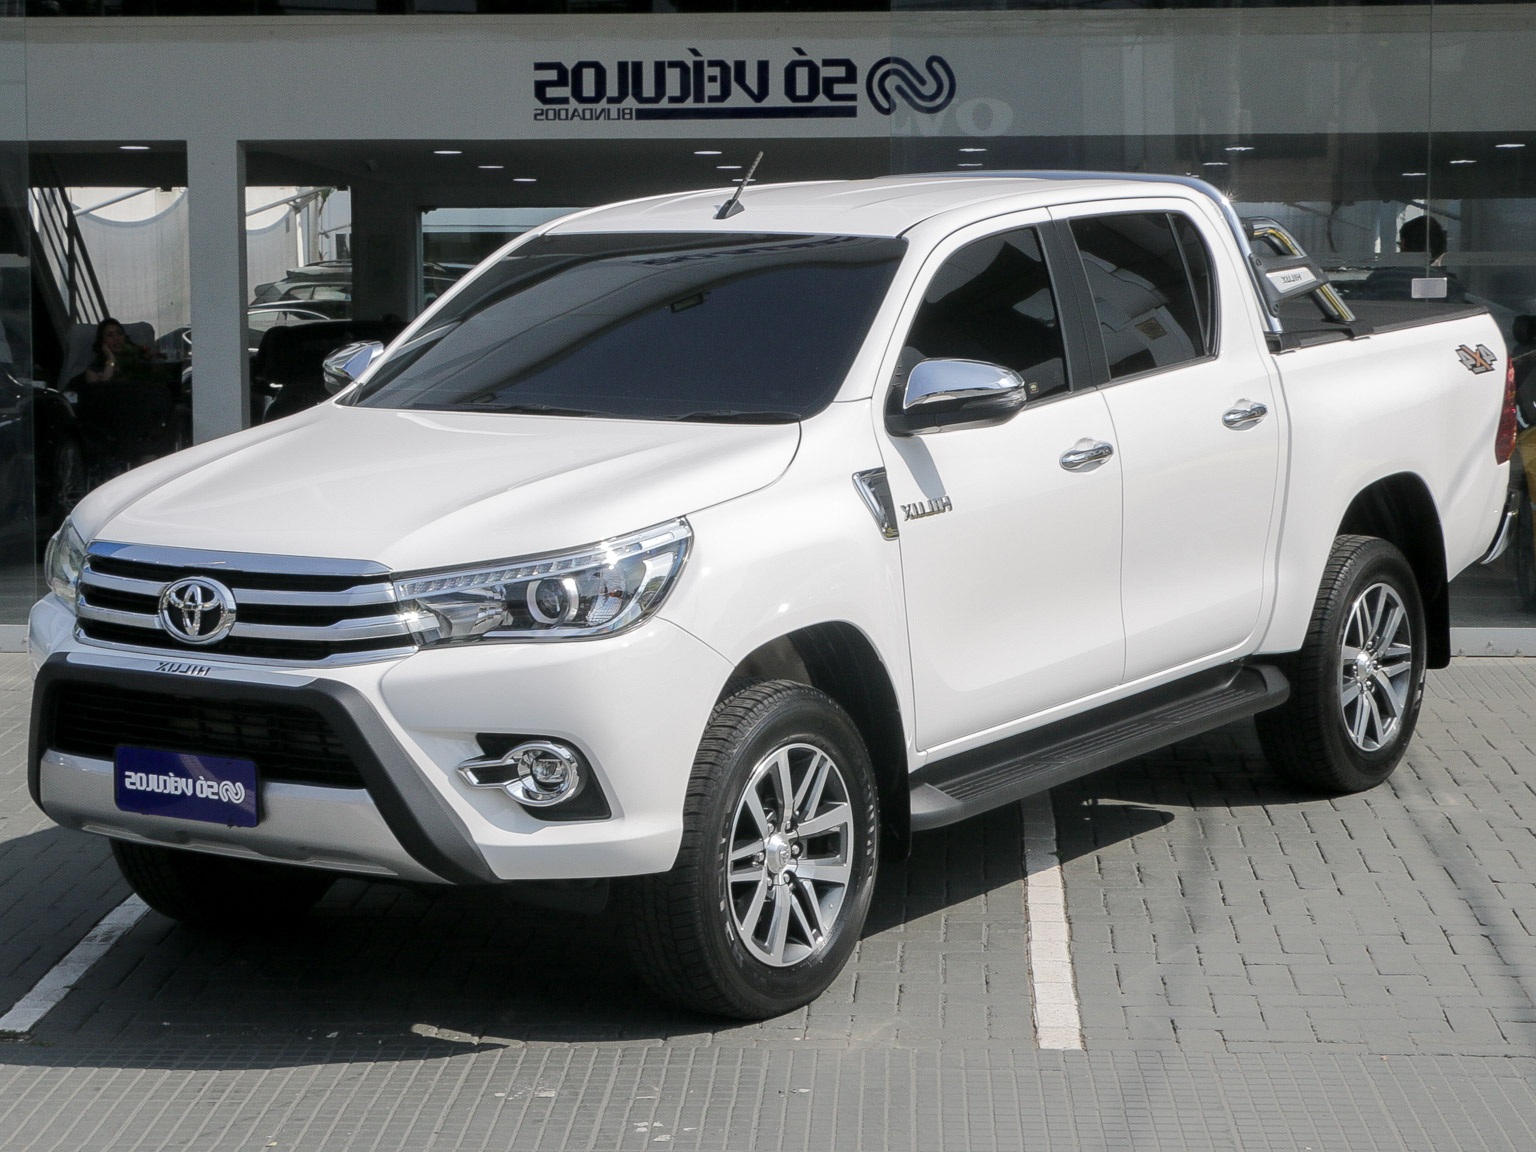 Hilux CD SRX 4x4 TurboDiesel